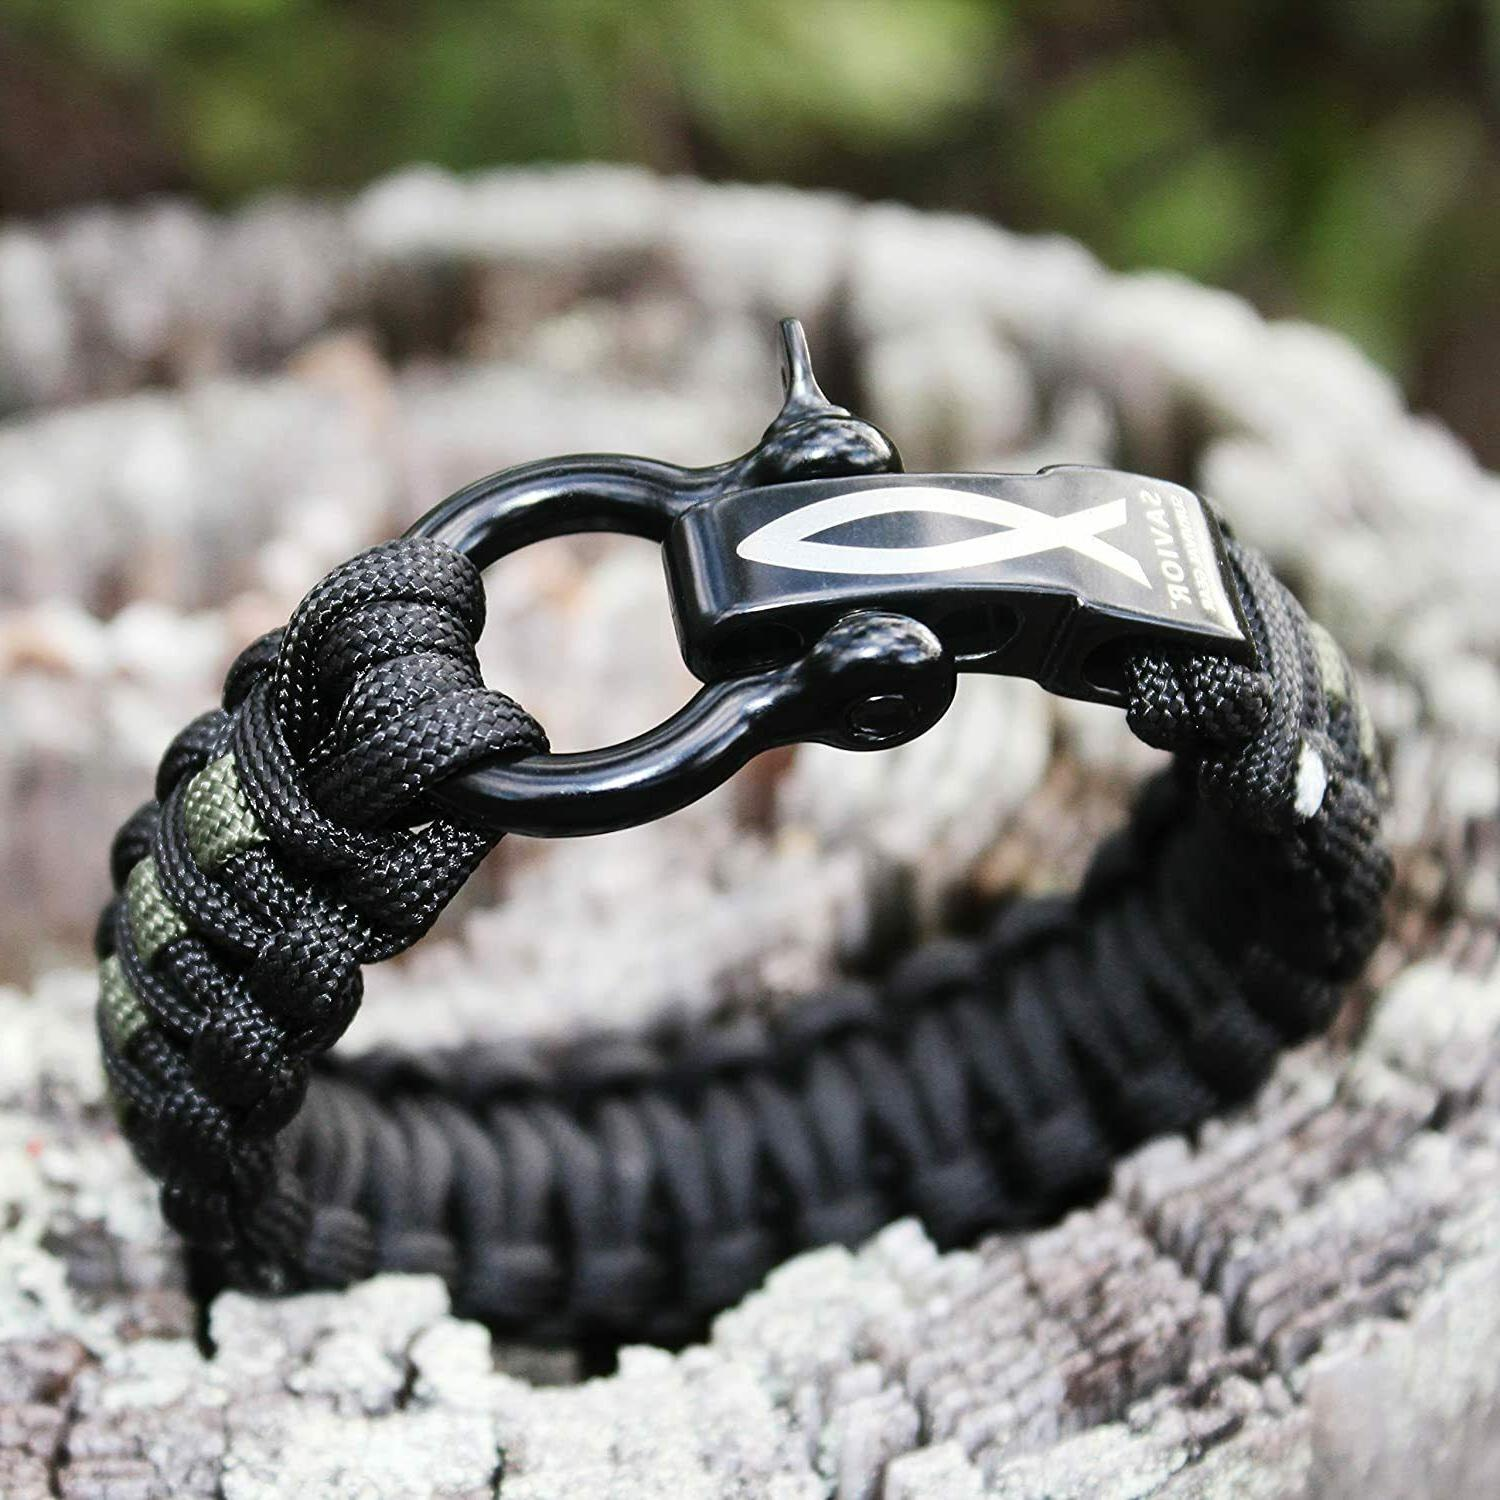 Savior Survival Gear Paracord Bracelet with Stainless Steel